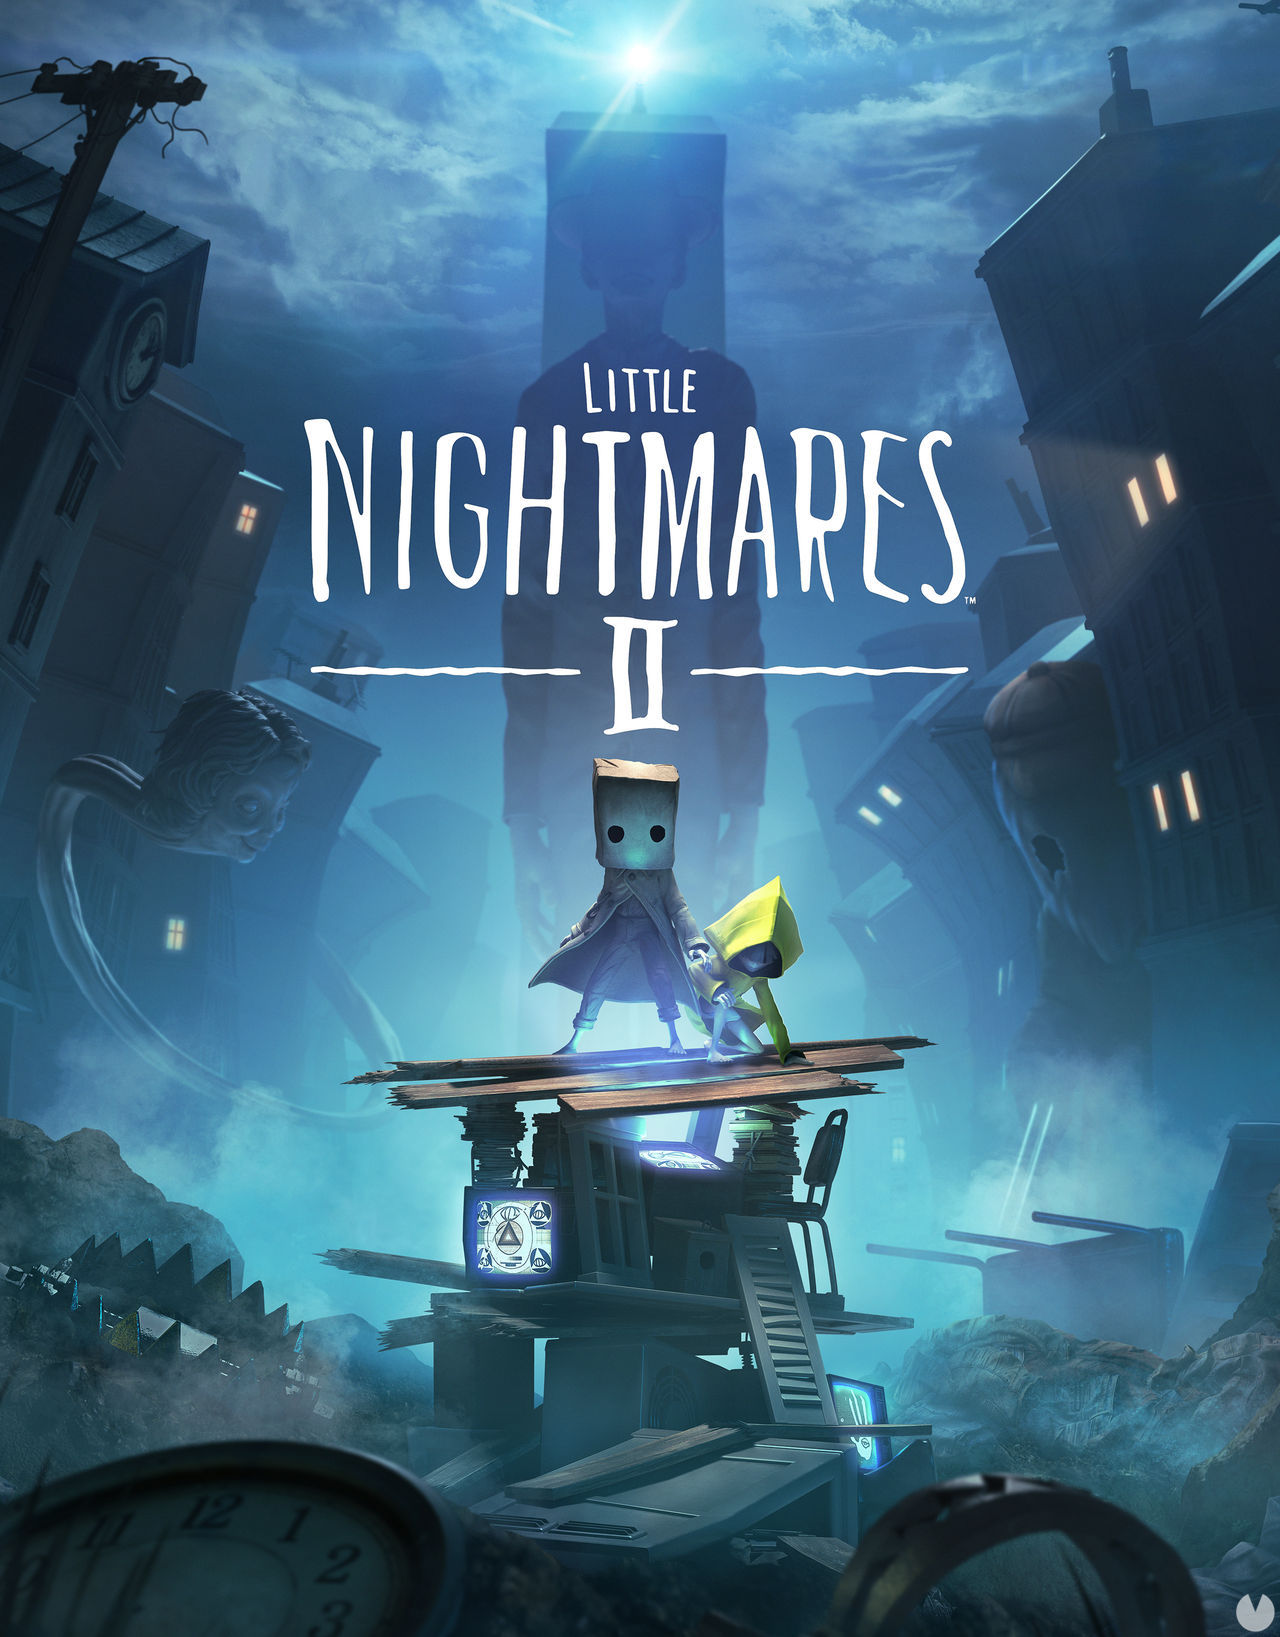 Little Nightmares 2 will be a single player experience, without slope co-op